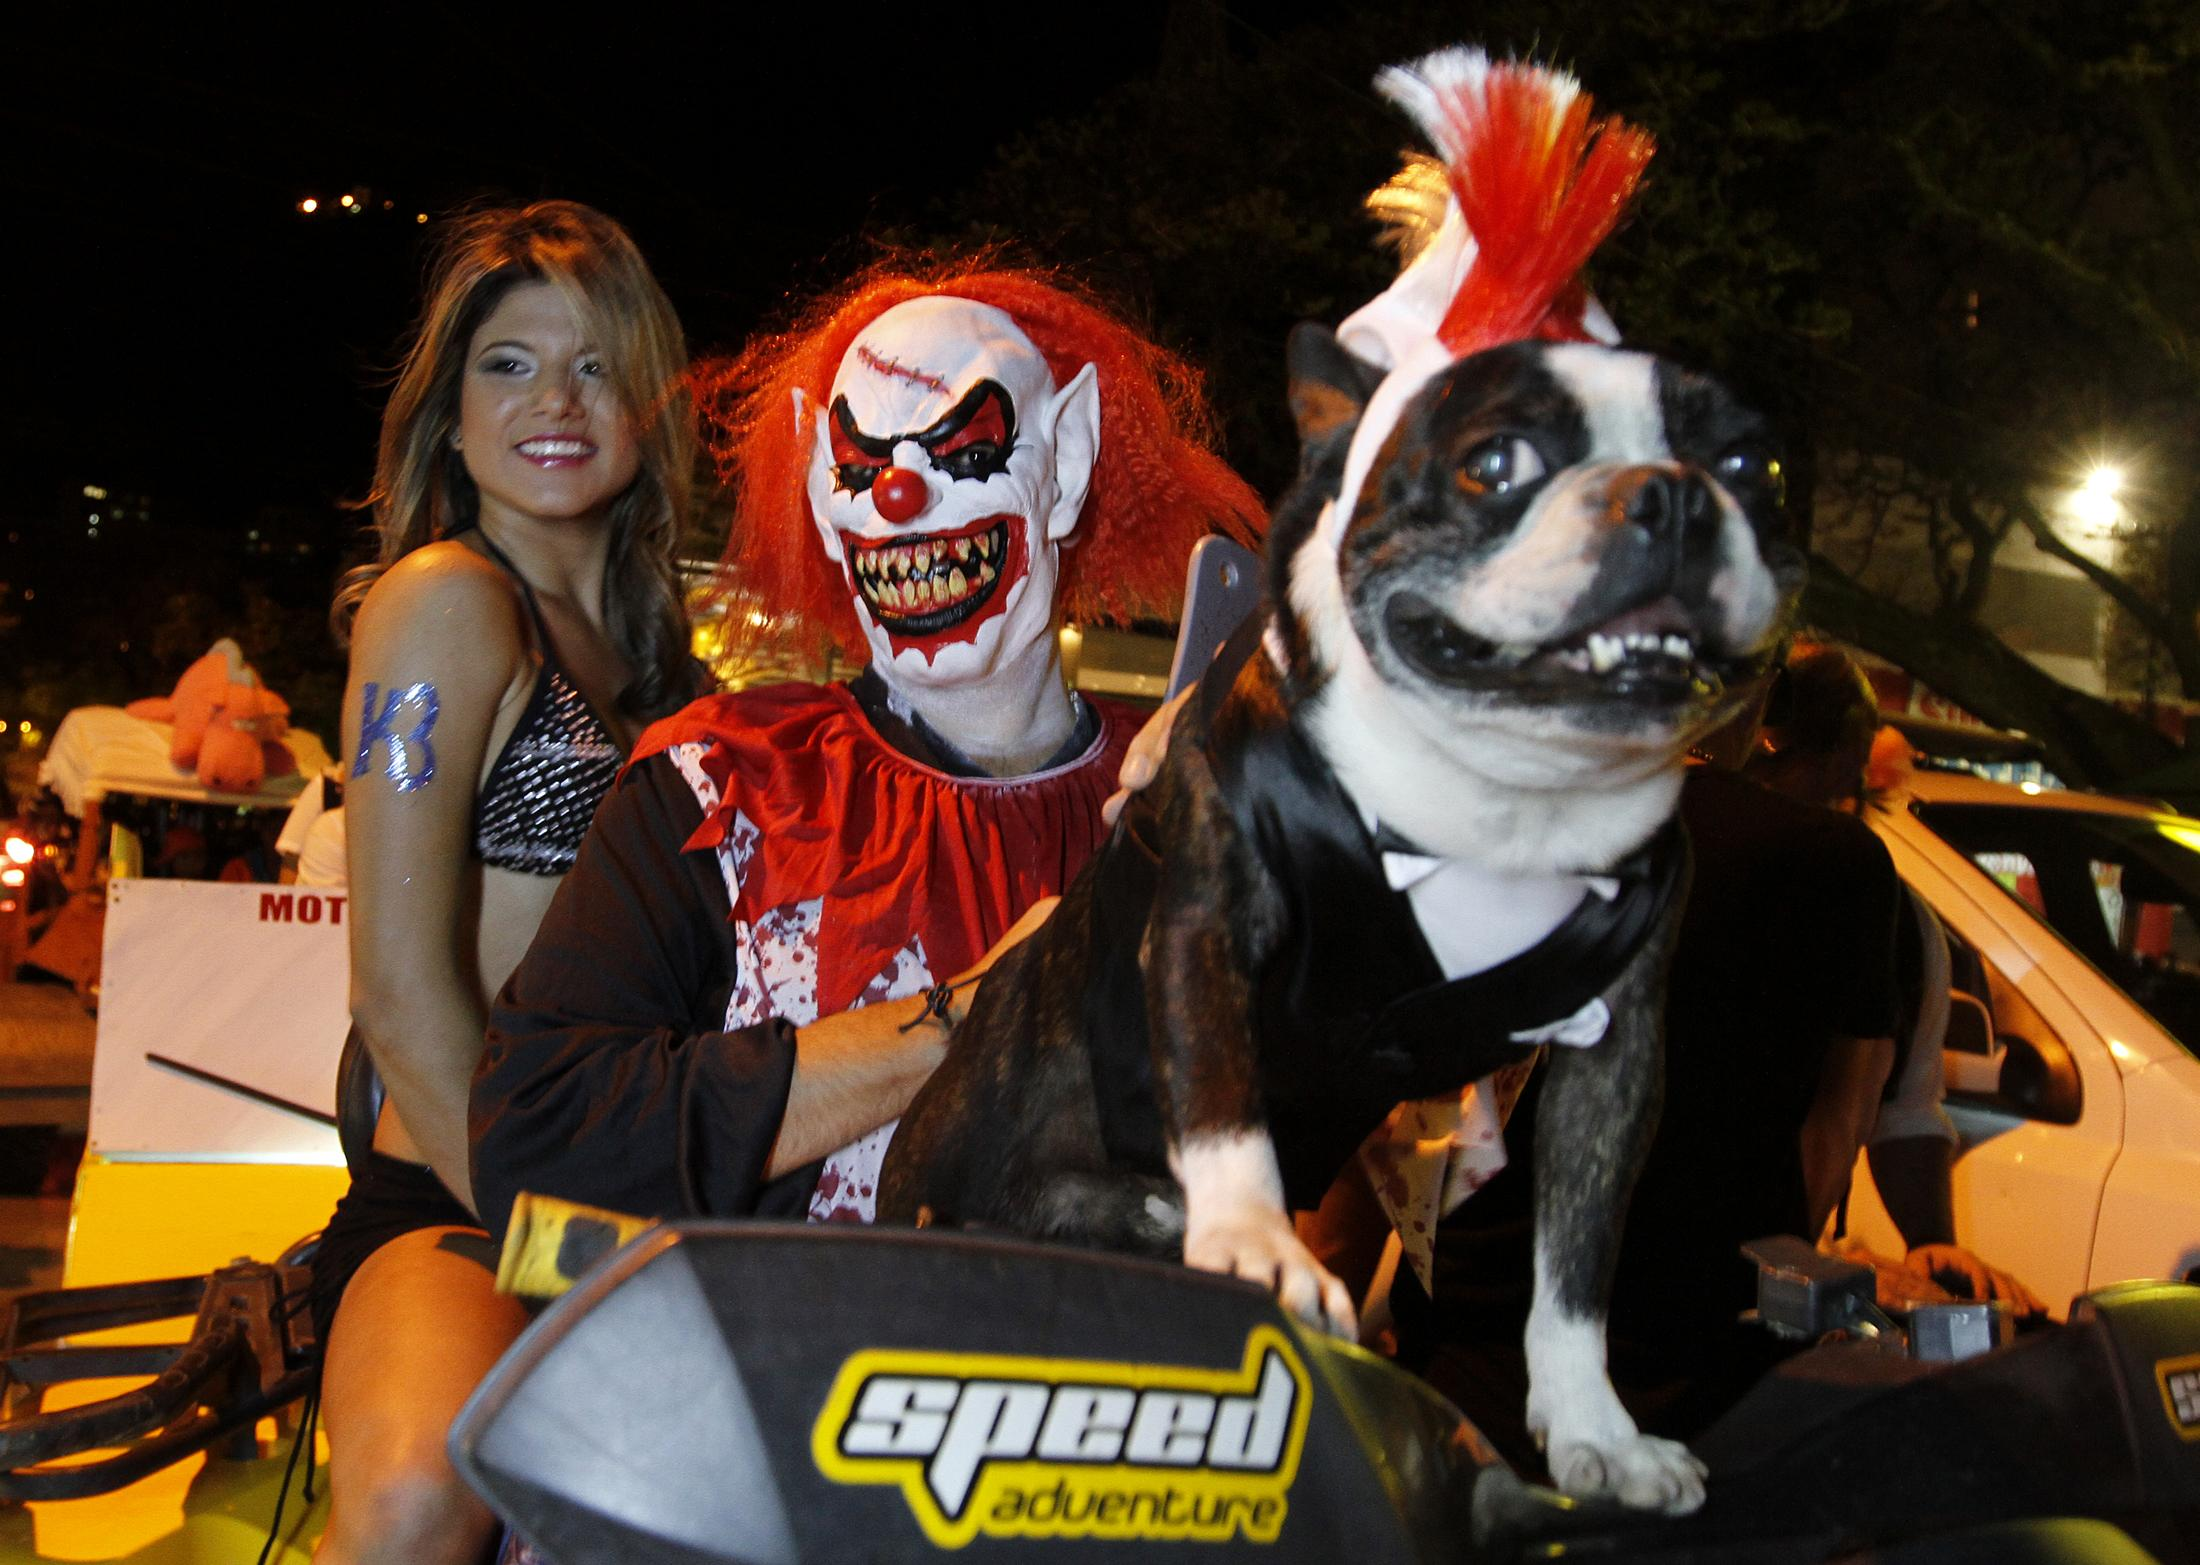 halloween costumes in cali columbia on october 31 2013 photo reuters